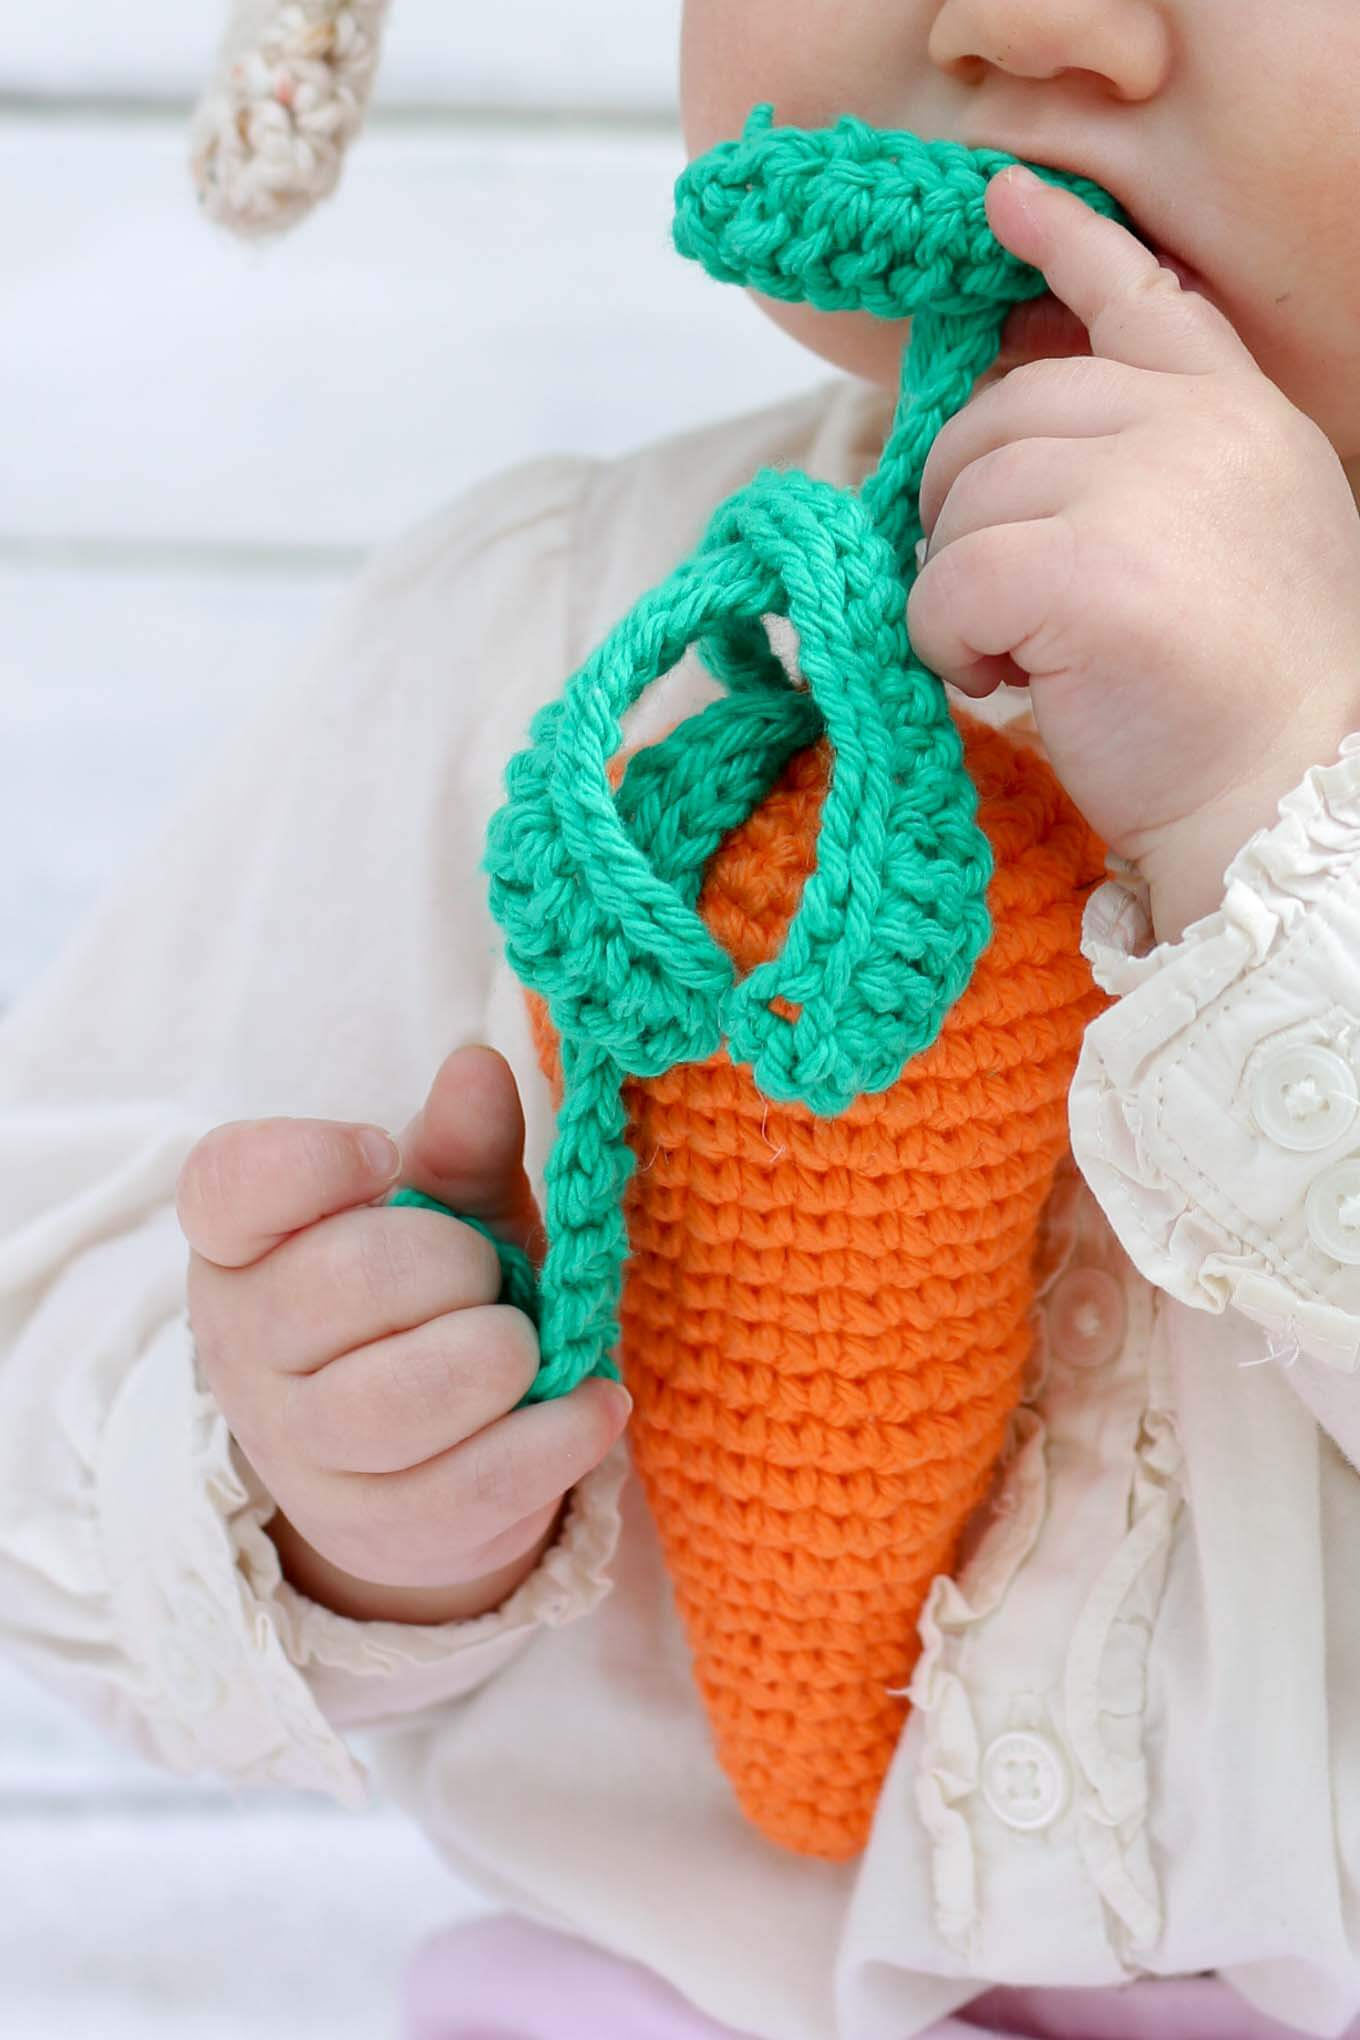 12 Easy and Adorable Crochet Toys That'll Melt Your Heart ...